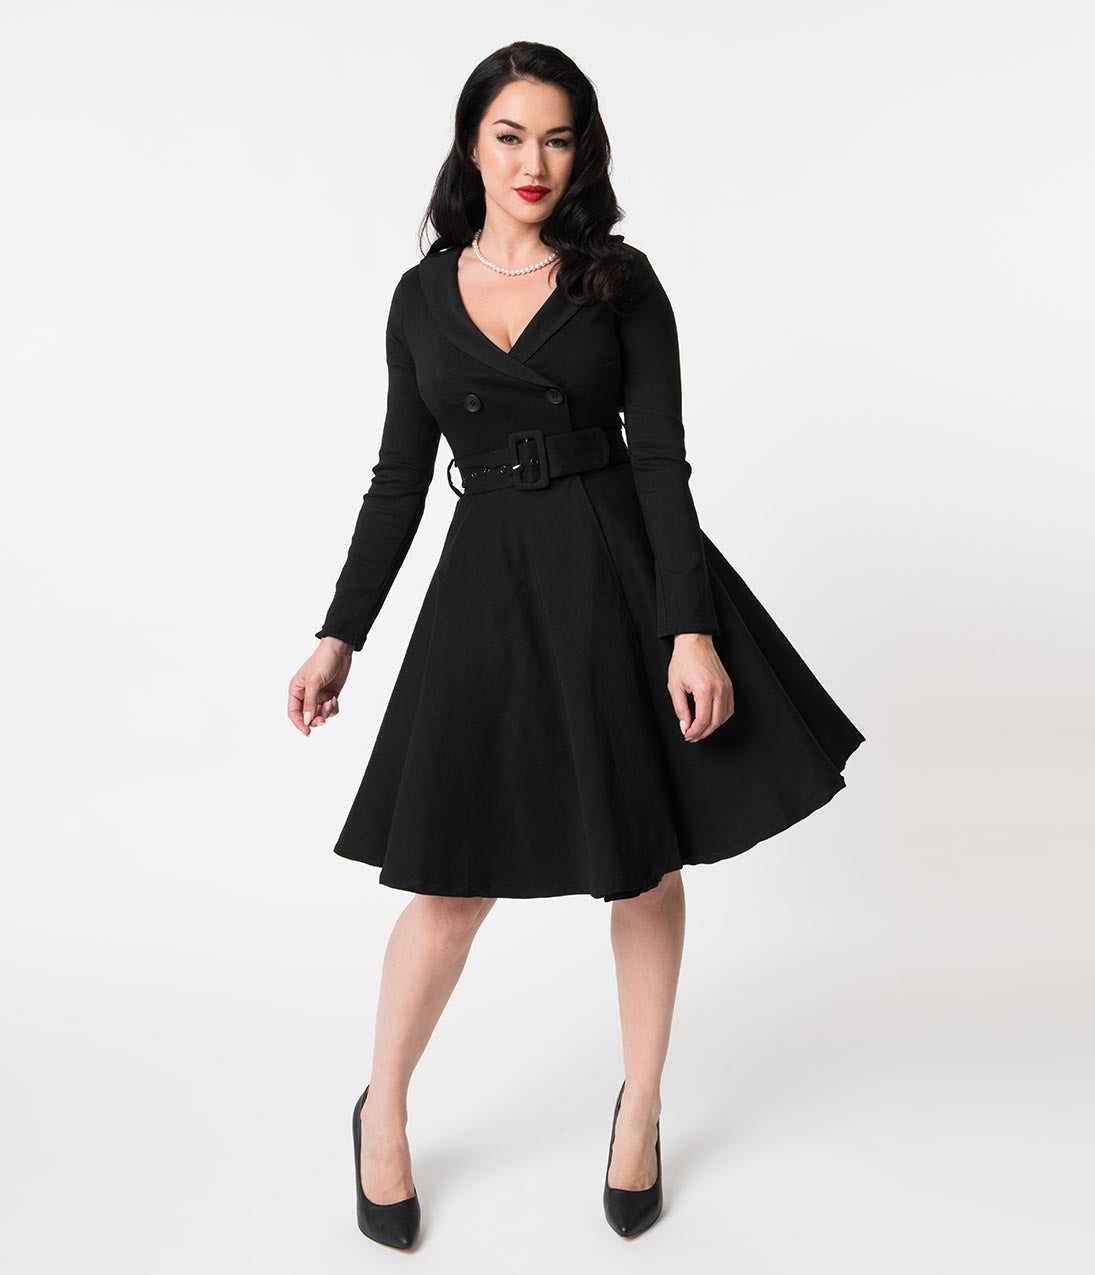 1950s Prom Dresses & Party Dresses Retro Style Black Double Breasted Swing Coat Dress $78.00 AT vintagedancer.com